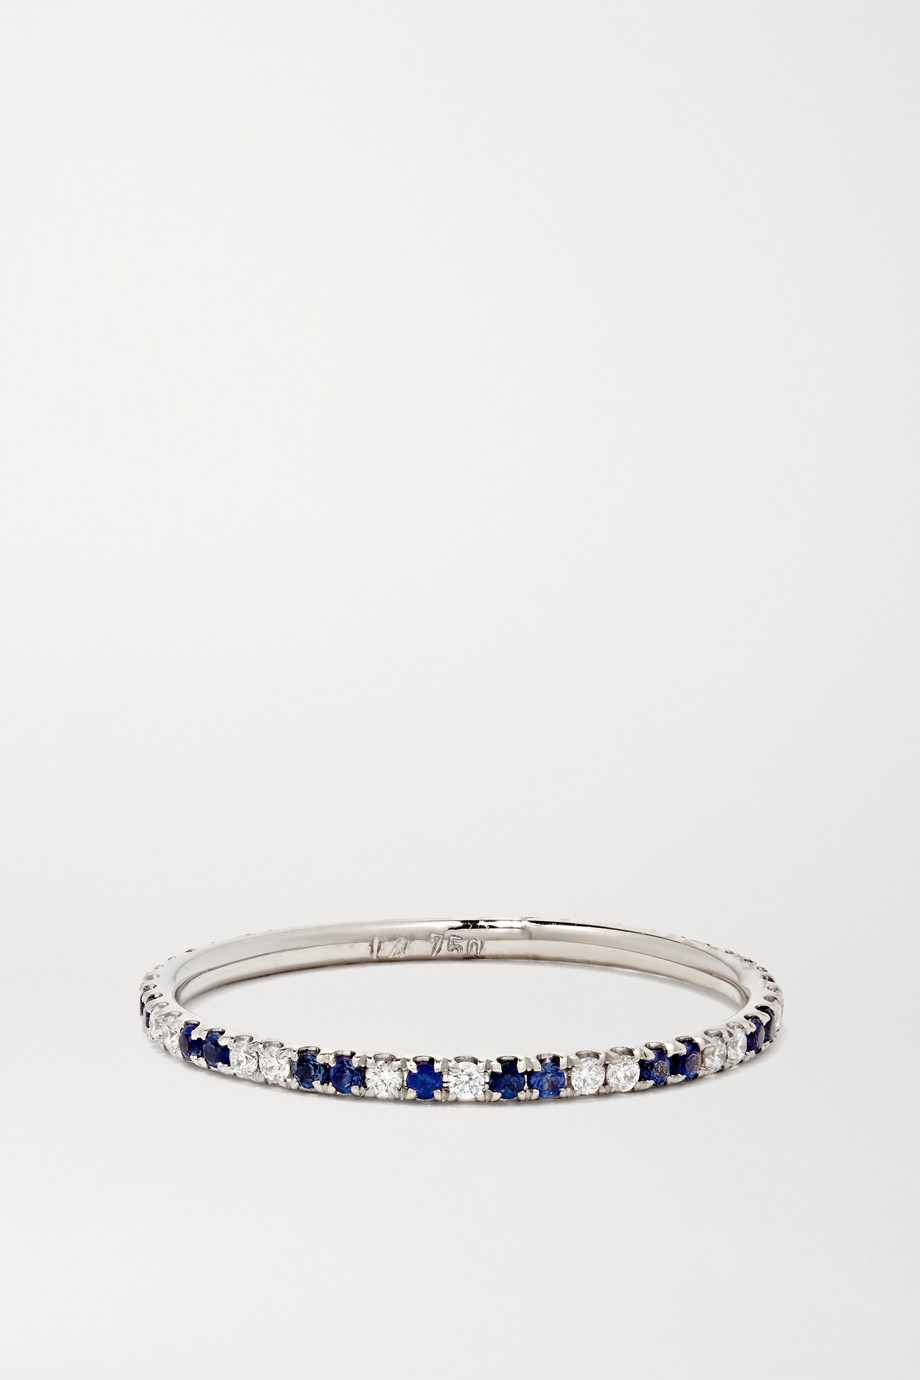 ILEANA MAKRI Thread Stripes 18-karat white gold, sapphire and diamond ring